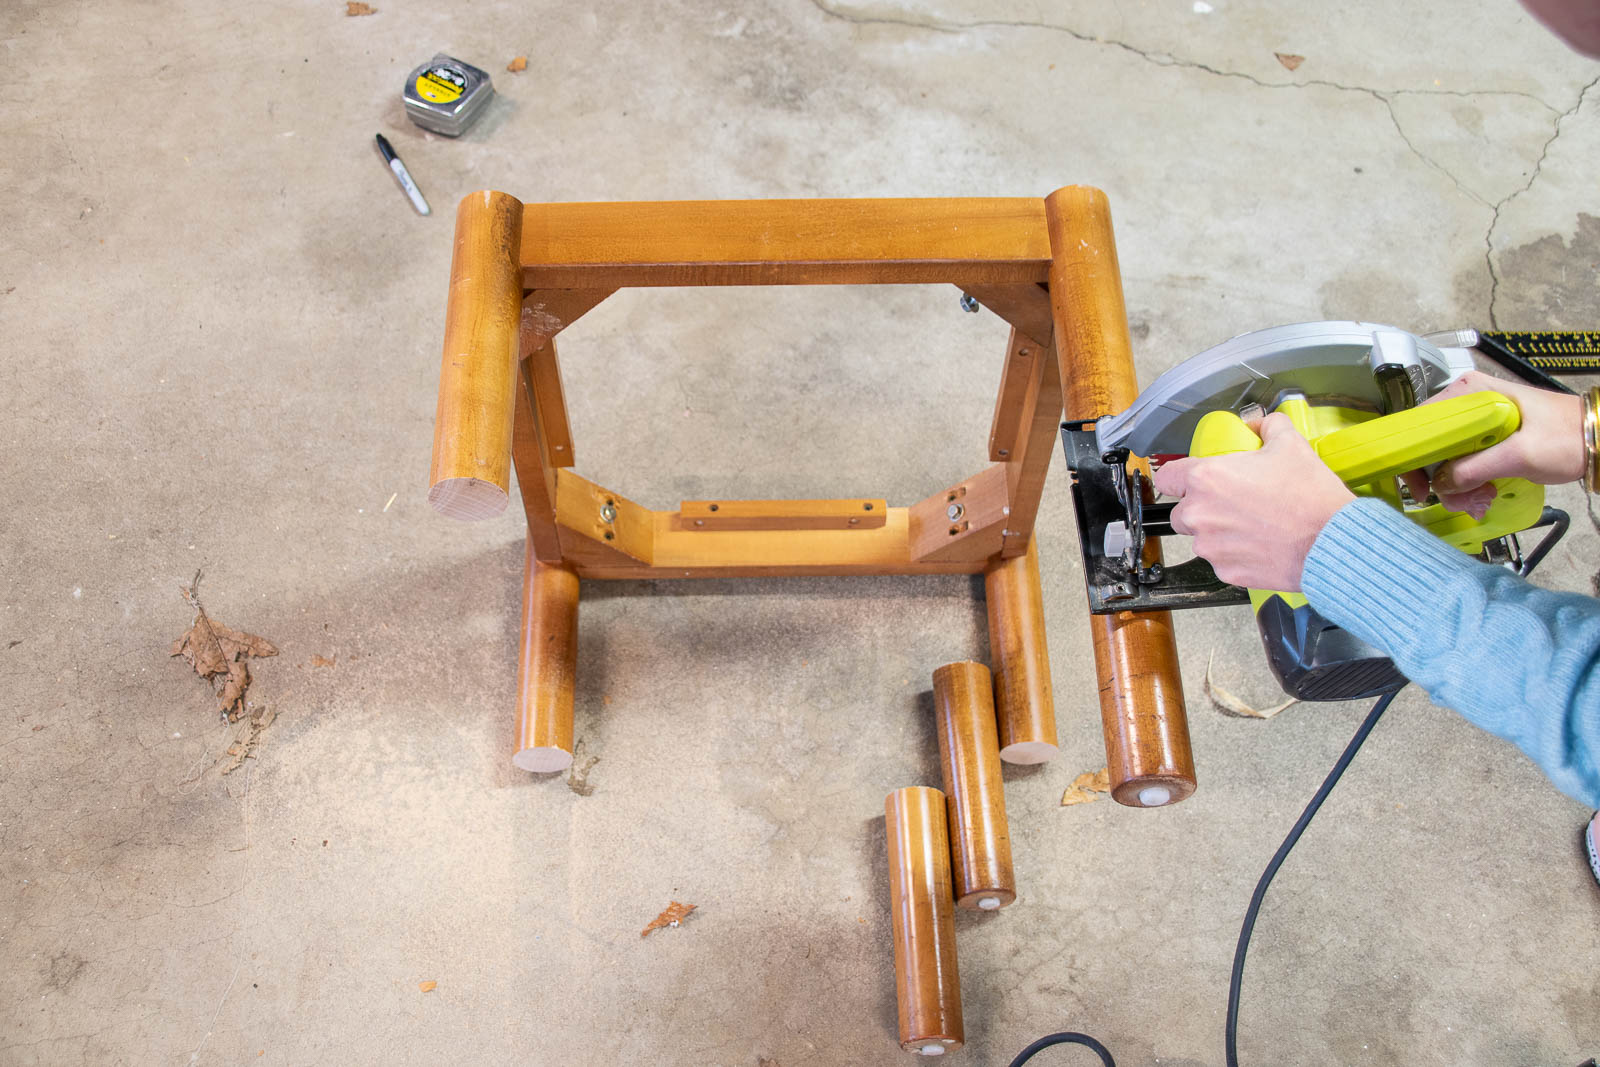 cut down the table legs to size